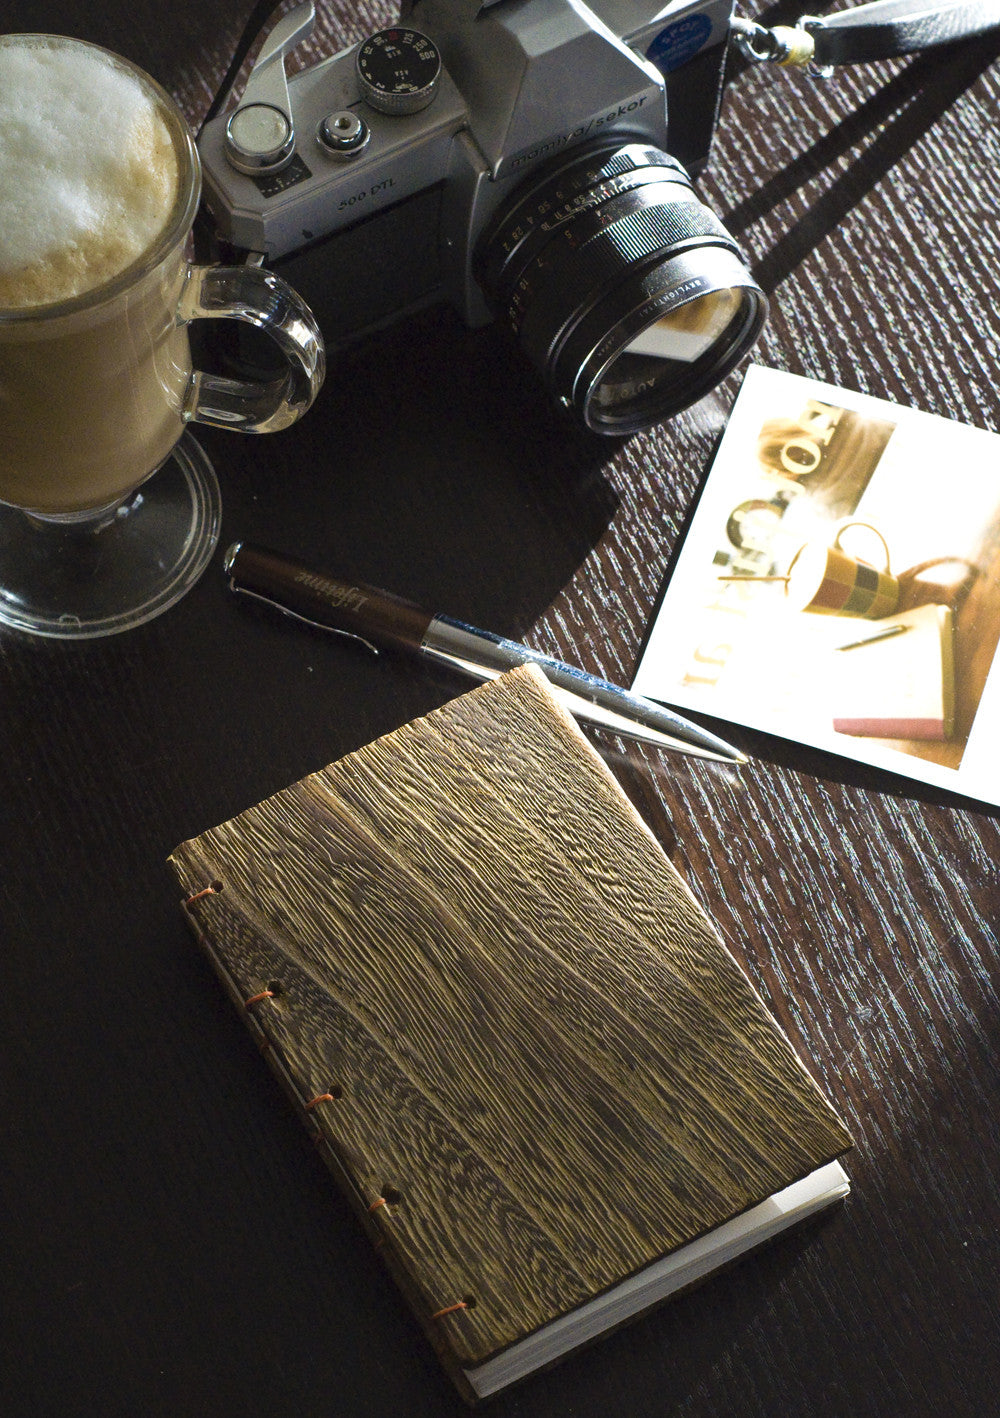 Paulownia Wooden handcrafted Sketch/Journal Book